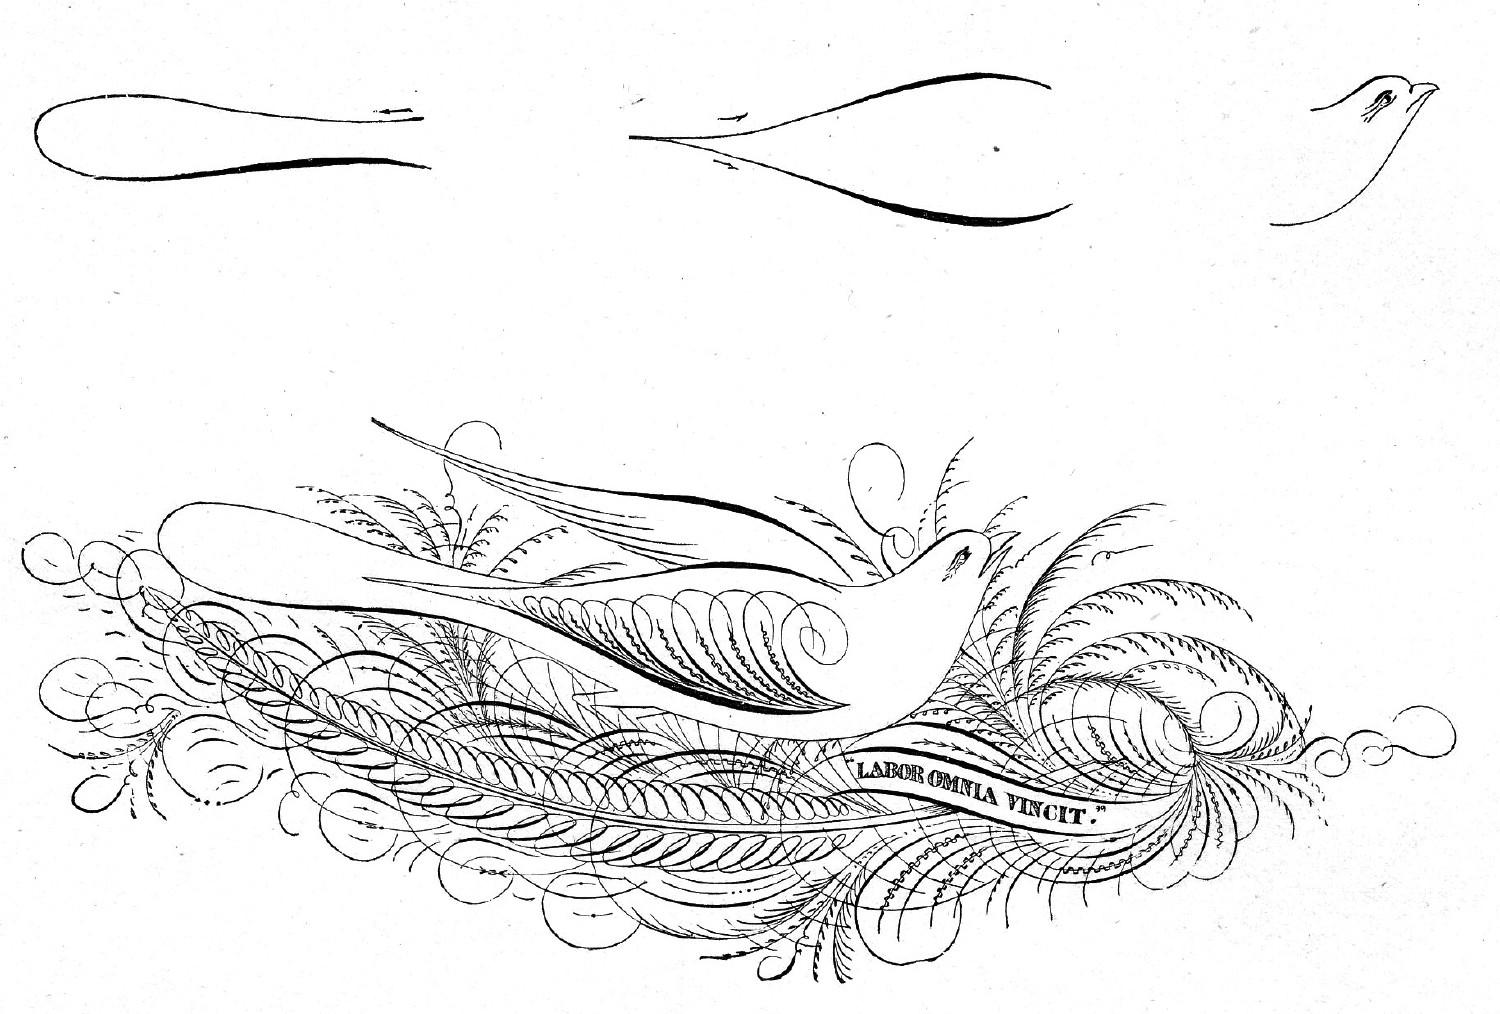 Ames' Guide to Self-Instruction in<br>Practical and Artistic Penmanship<br>Daniel T. Ames, 1884